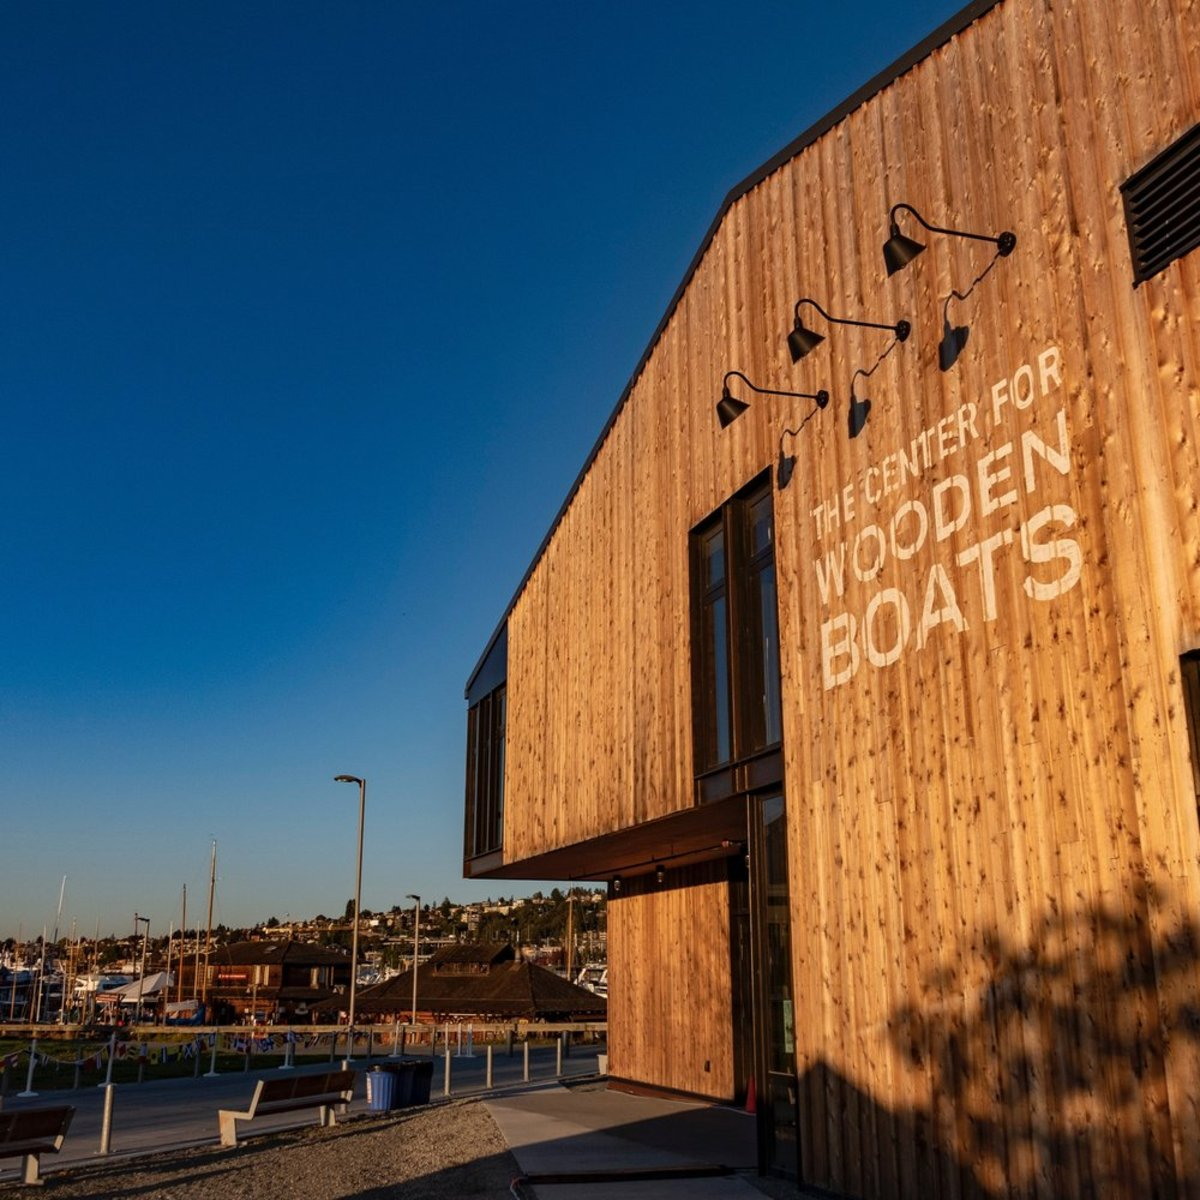 The Center for Wooden Boats is one of the grant recipients.